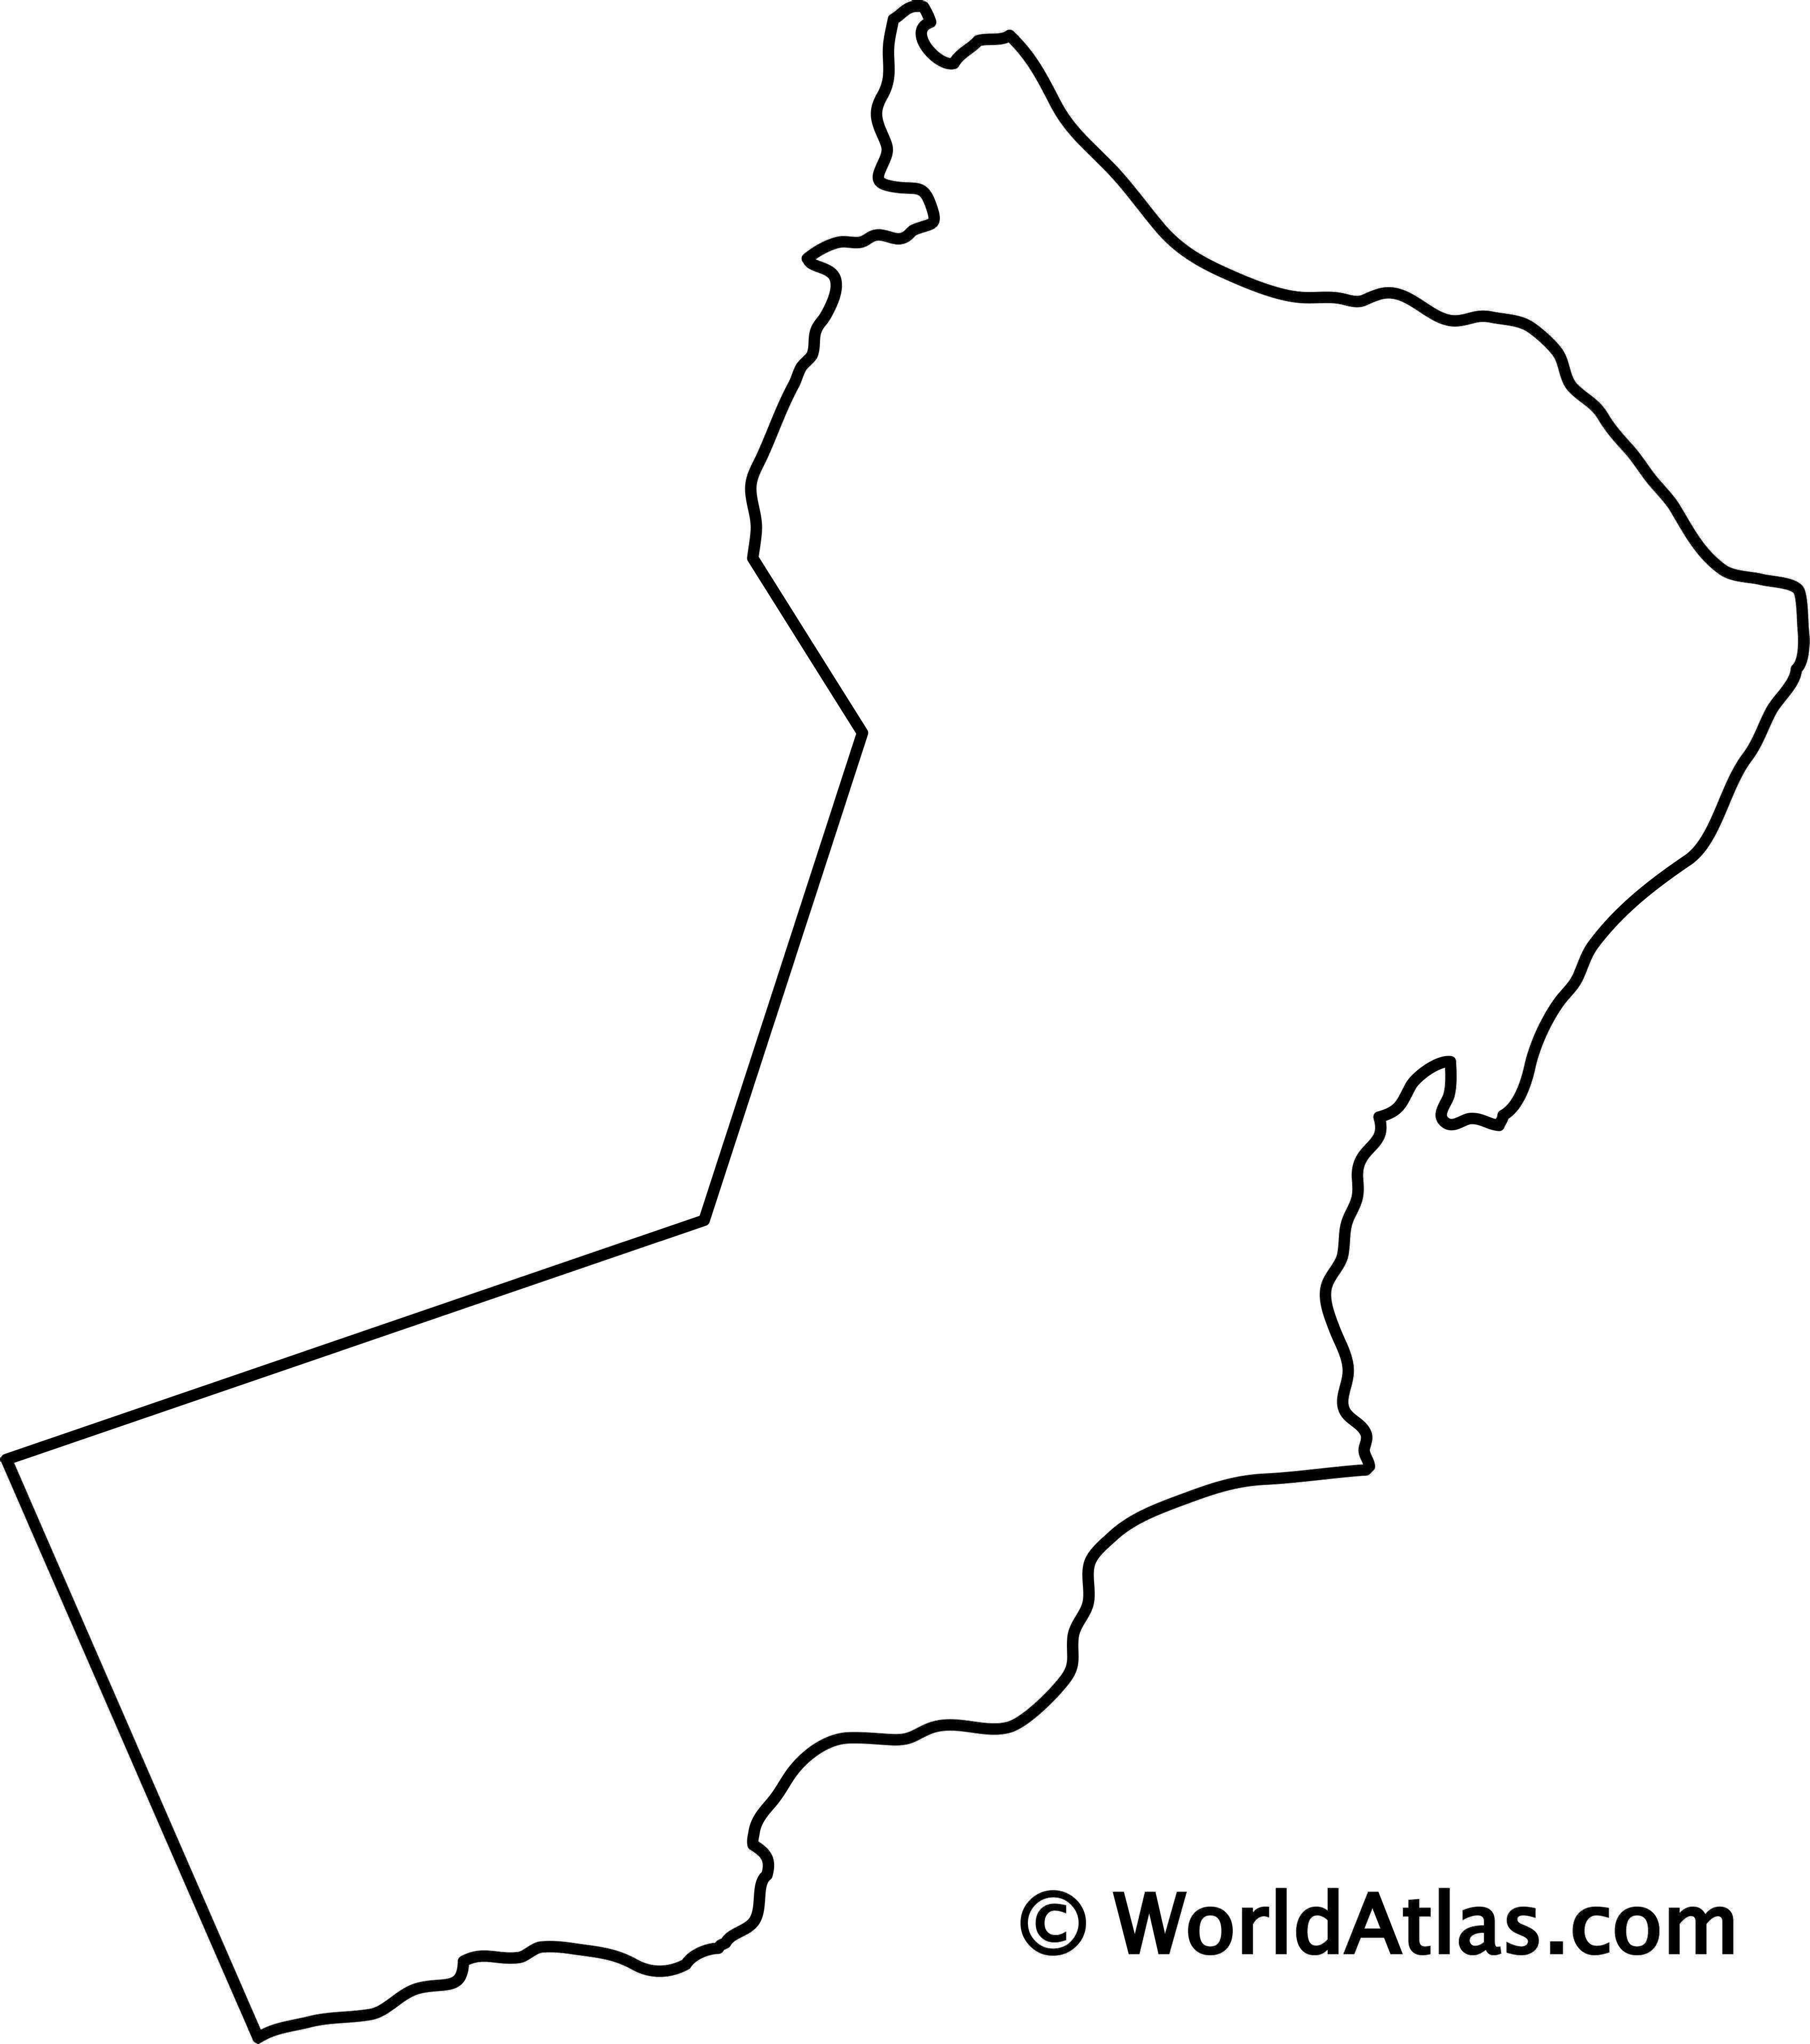 Blank Outline Map of Oman